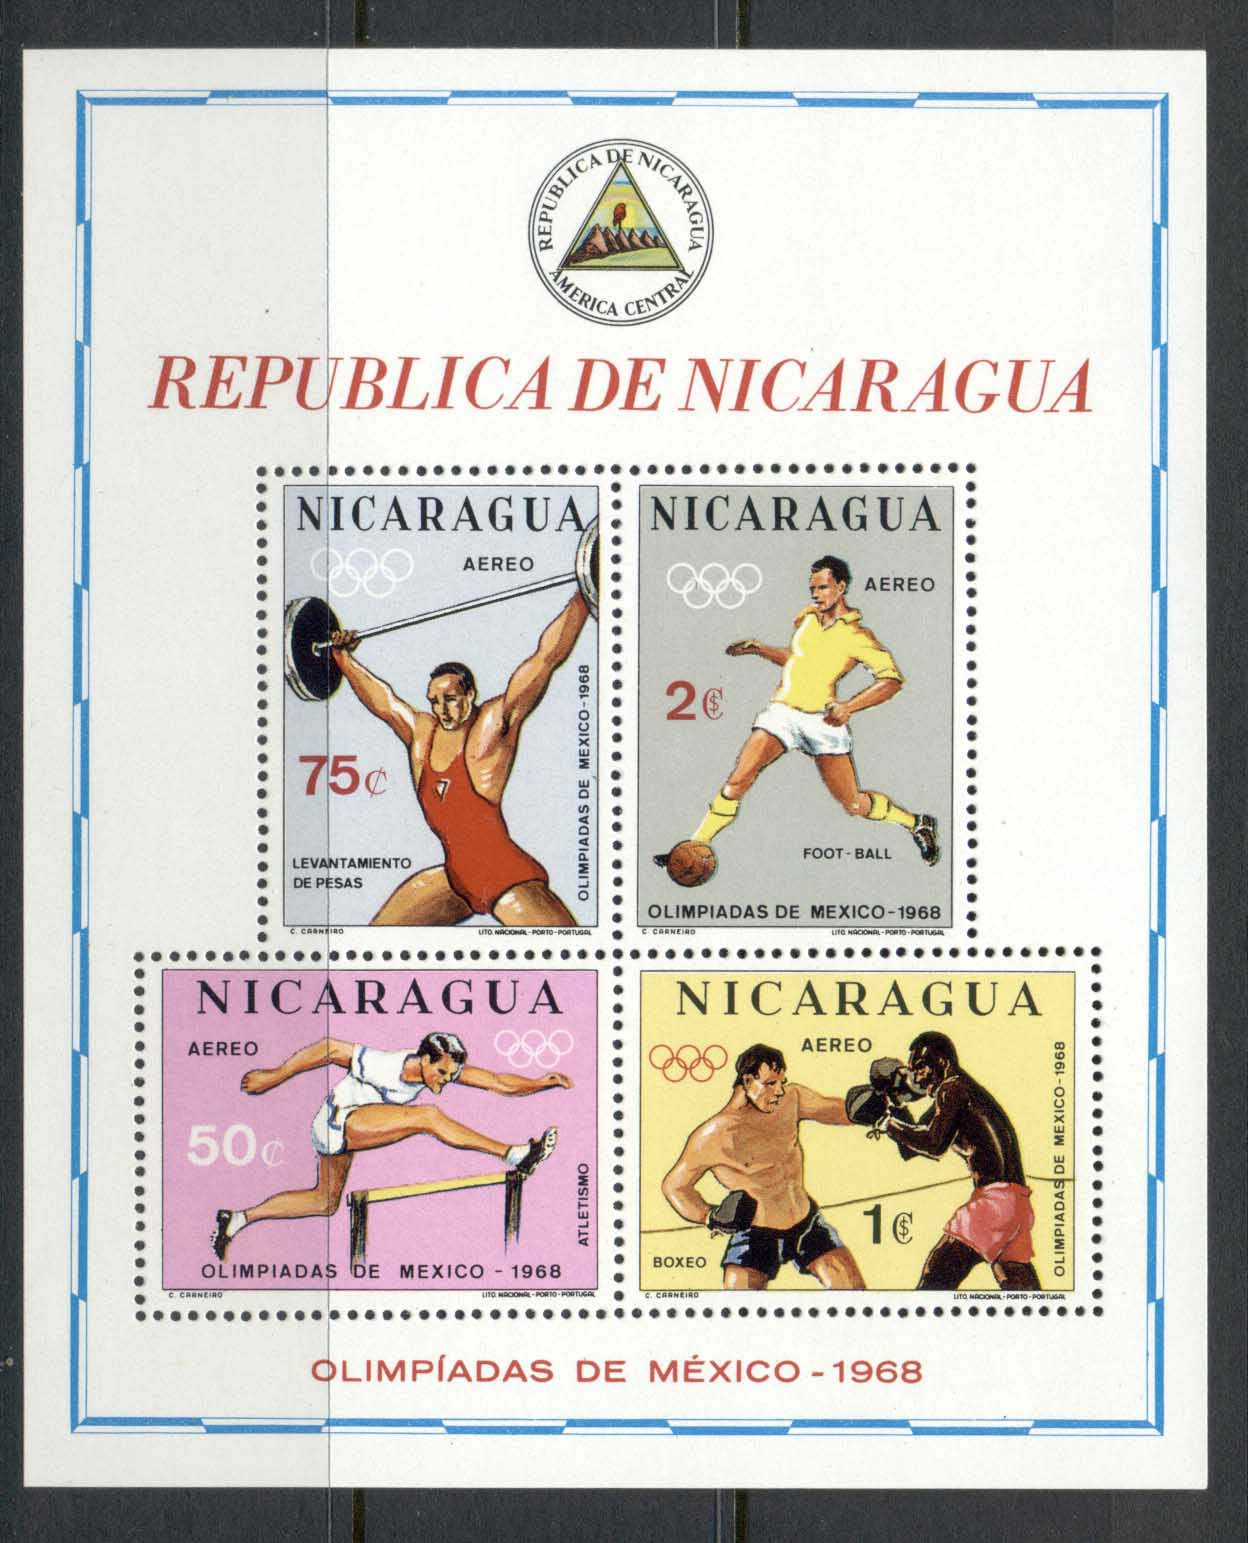 Nicaragua 1968 Summer Olympics Mexico City MS MUH